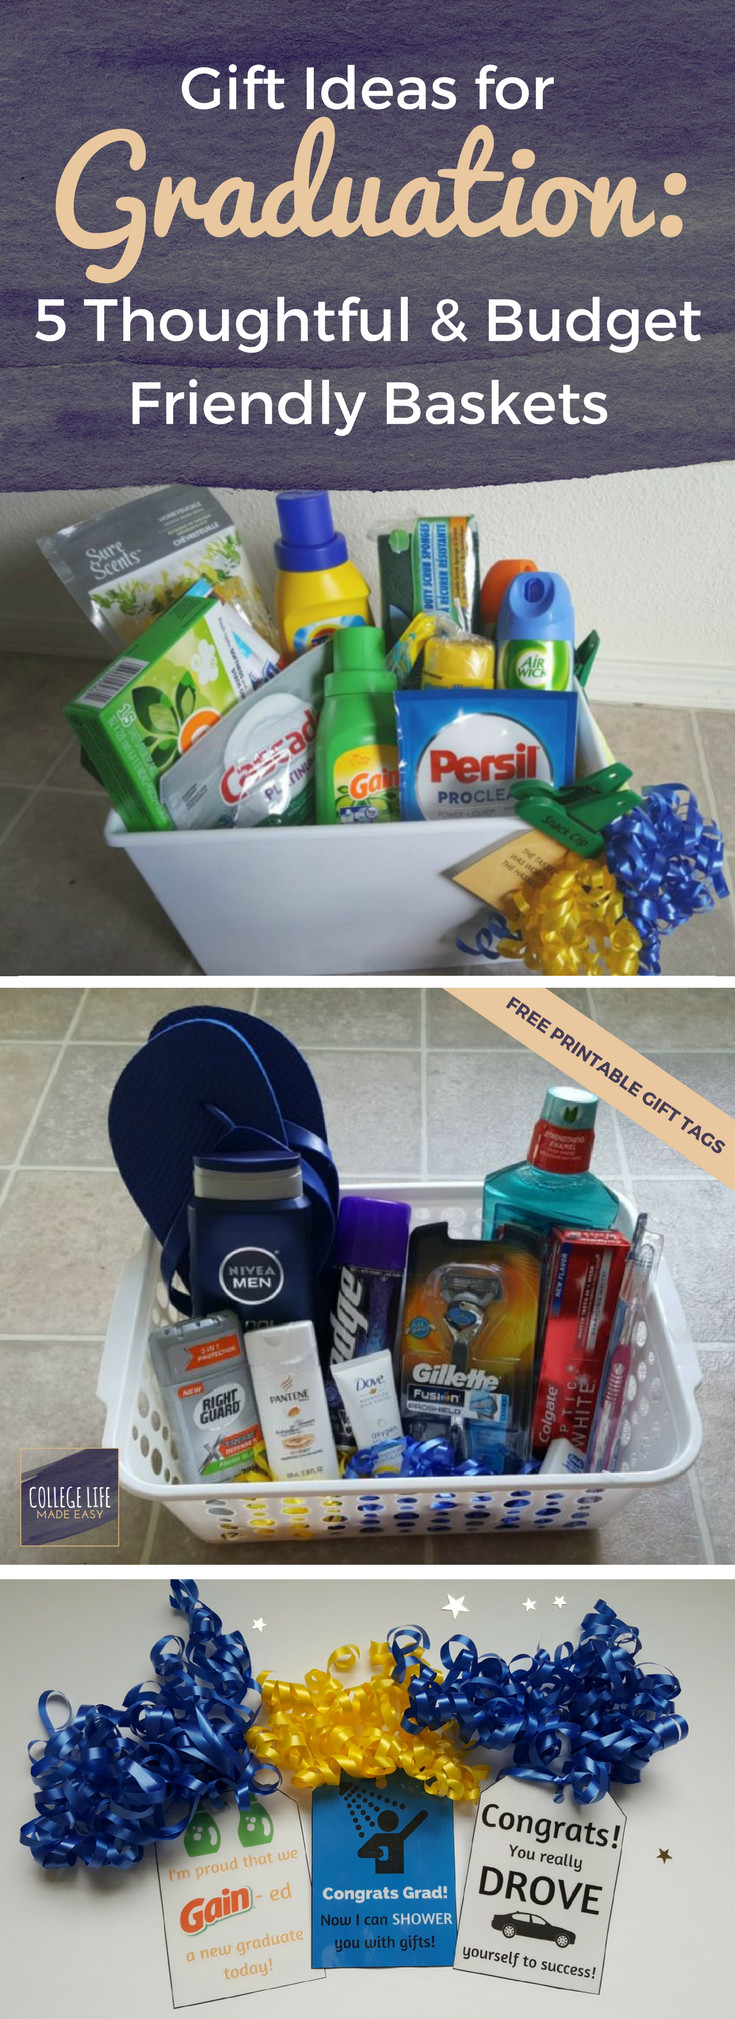 Best ideas about Gift Basket Ideas For Boys . Save or Pin 5 DIY Going Away to College Gift Basket Ideas for Boys Now.